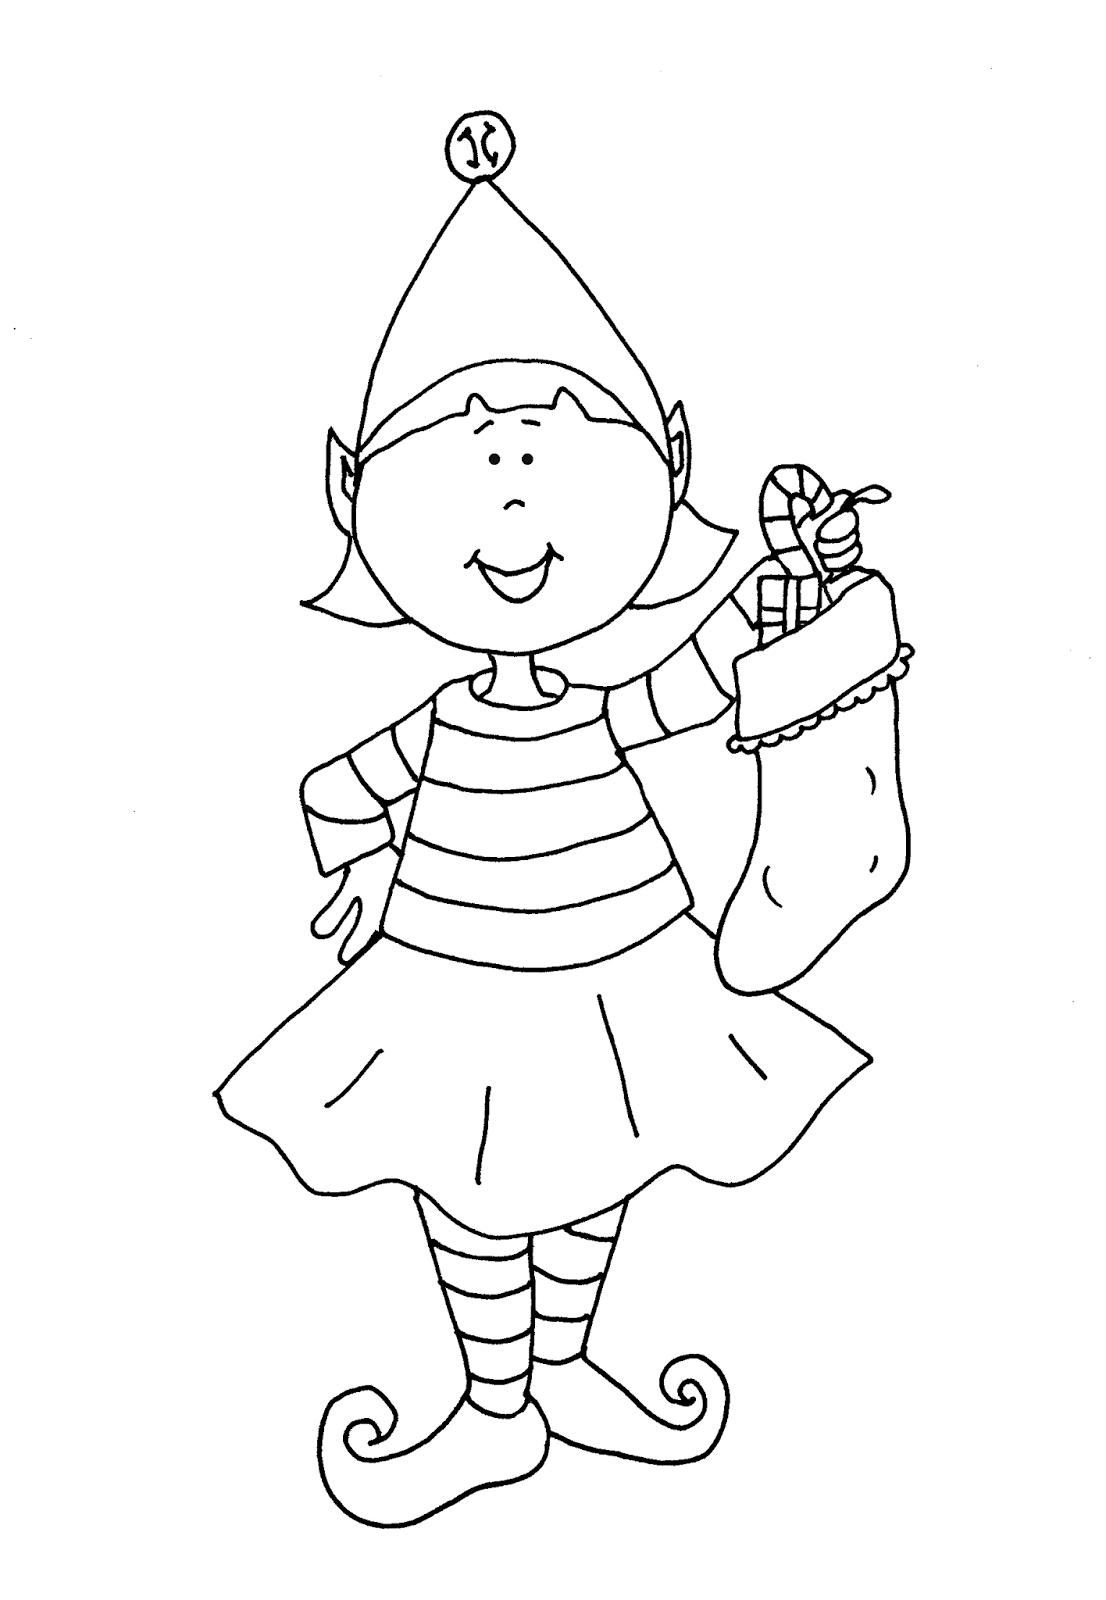 girl elf coloring page coloring pages for girls 9 10 free download on clipartmag elf page coloring girl